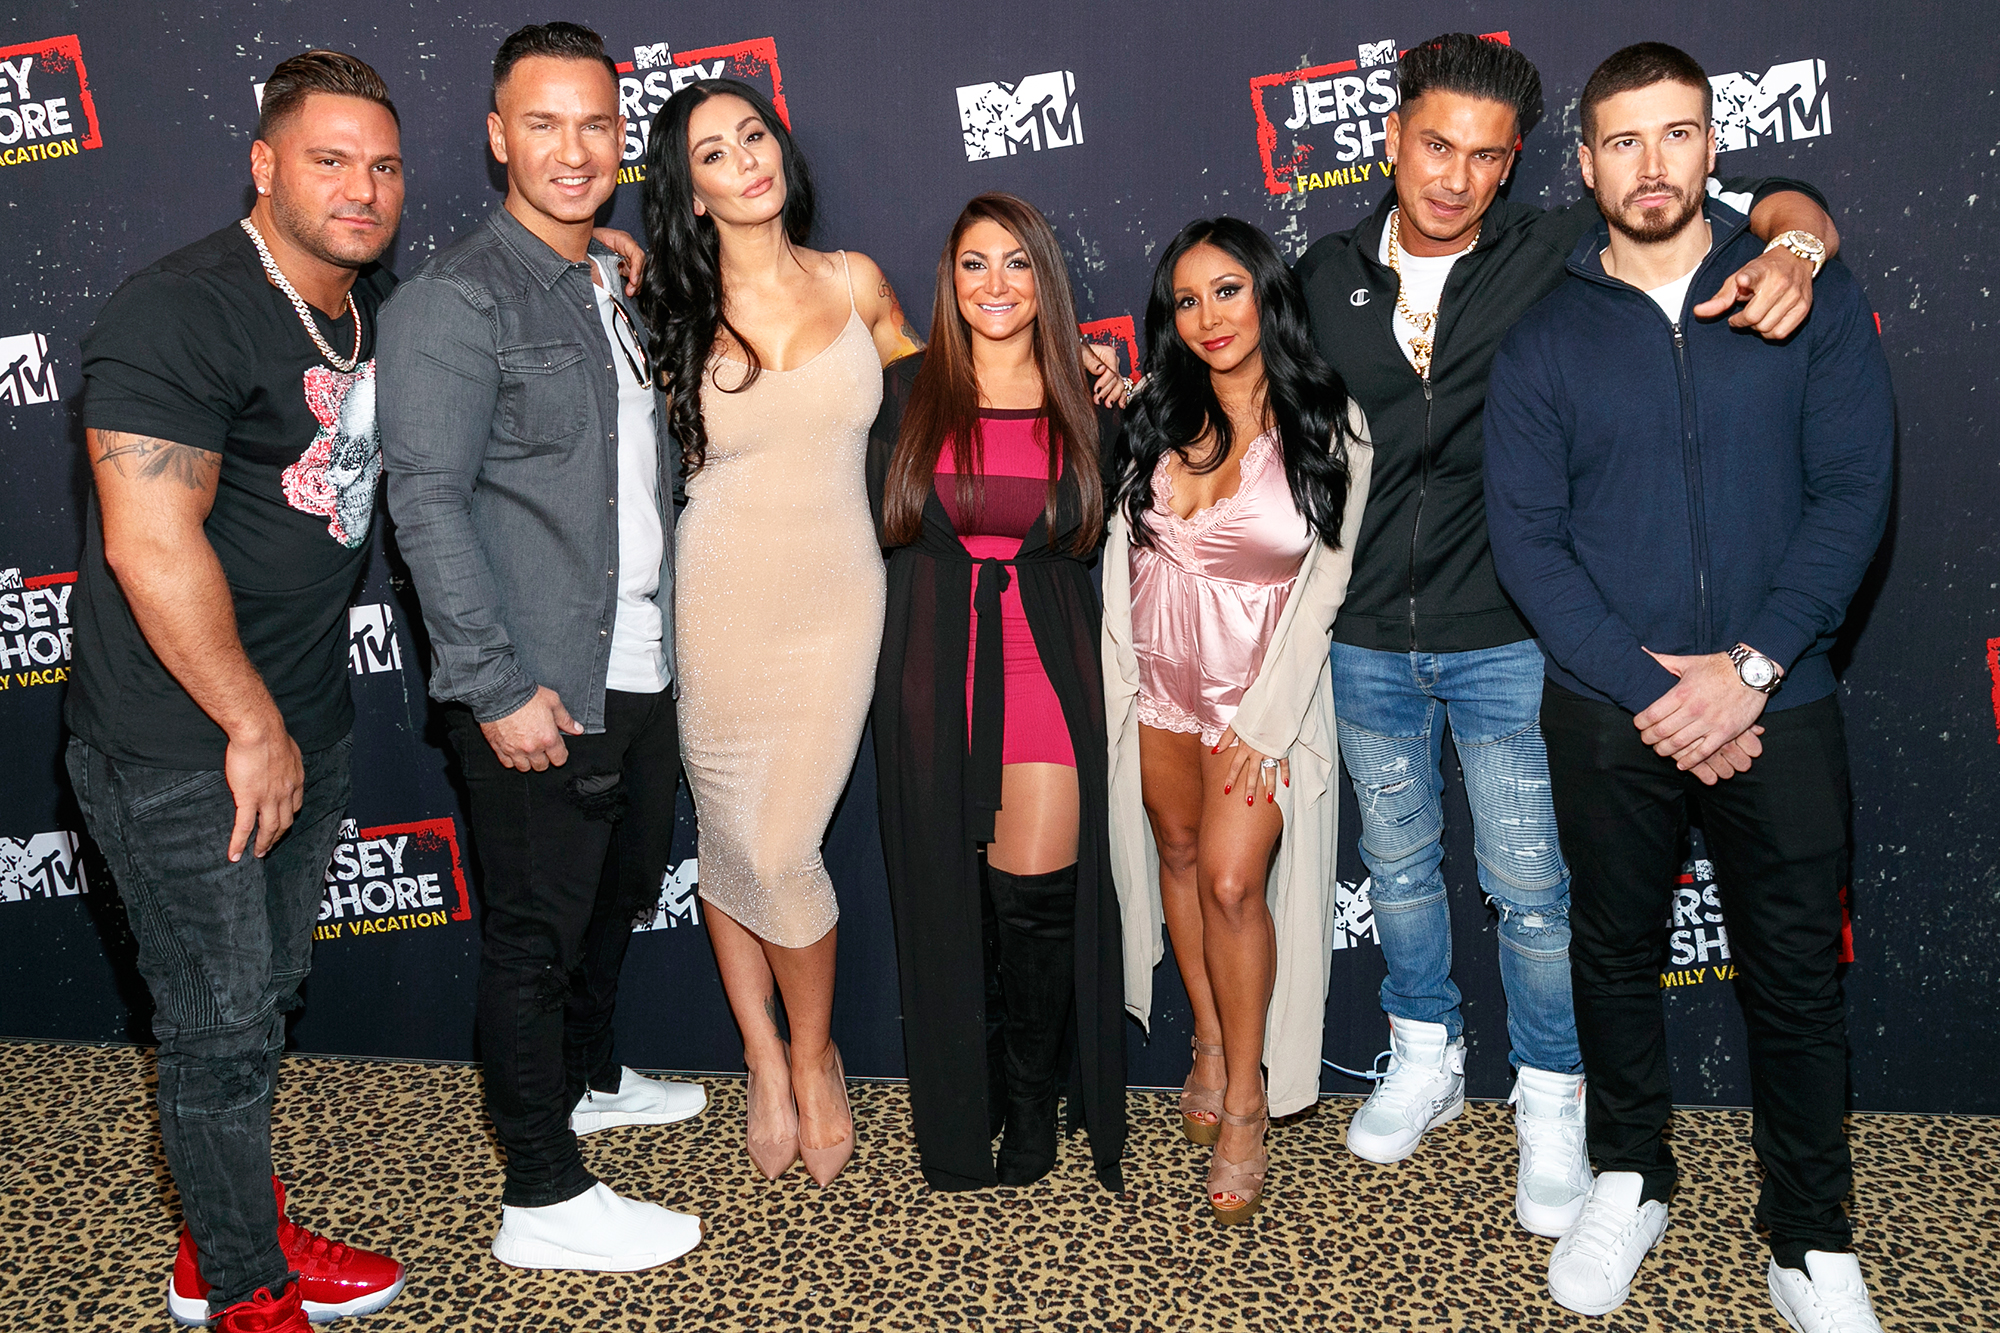 Jersey Shore Family Vacation Premiere Party Photos